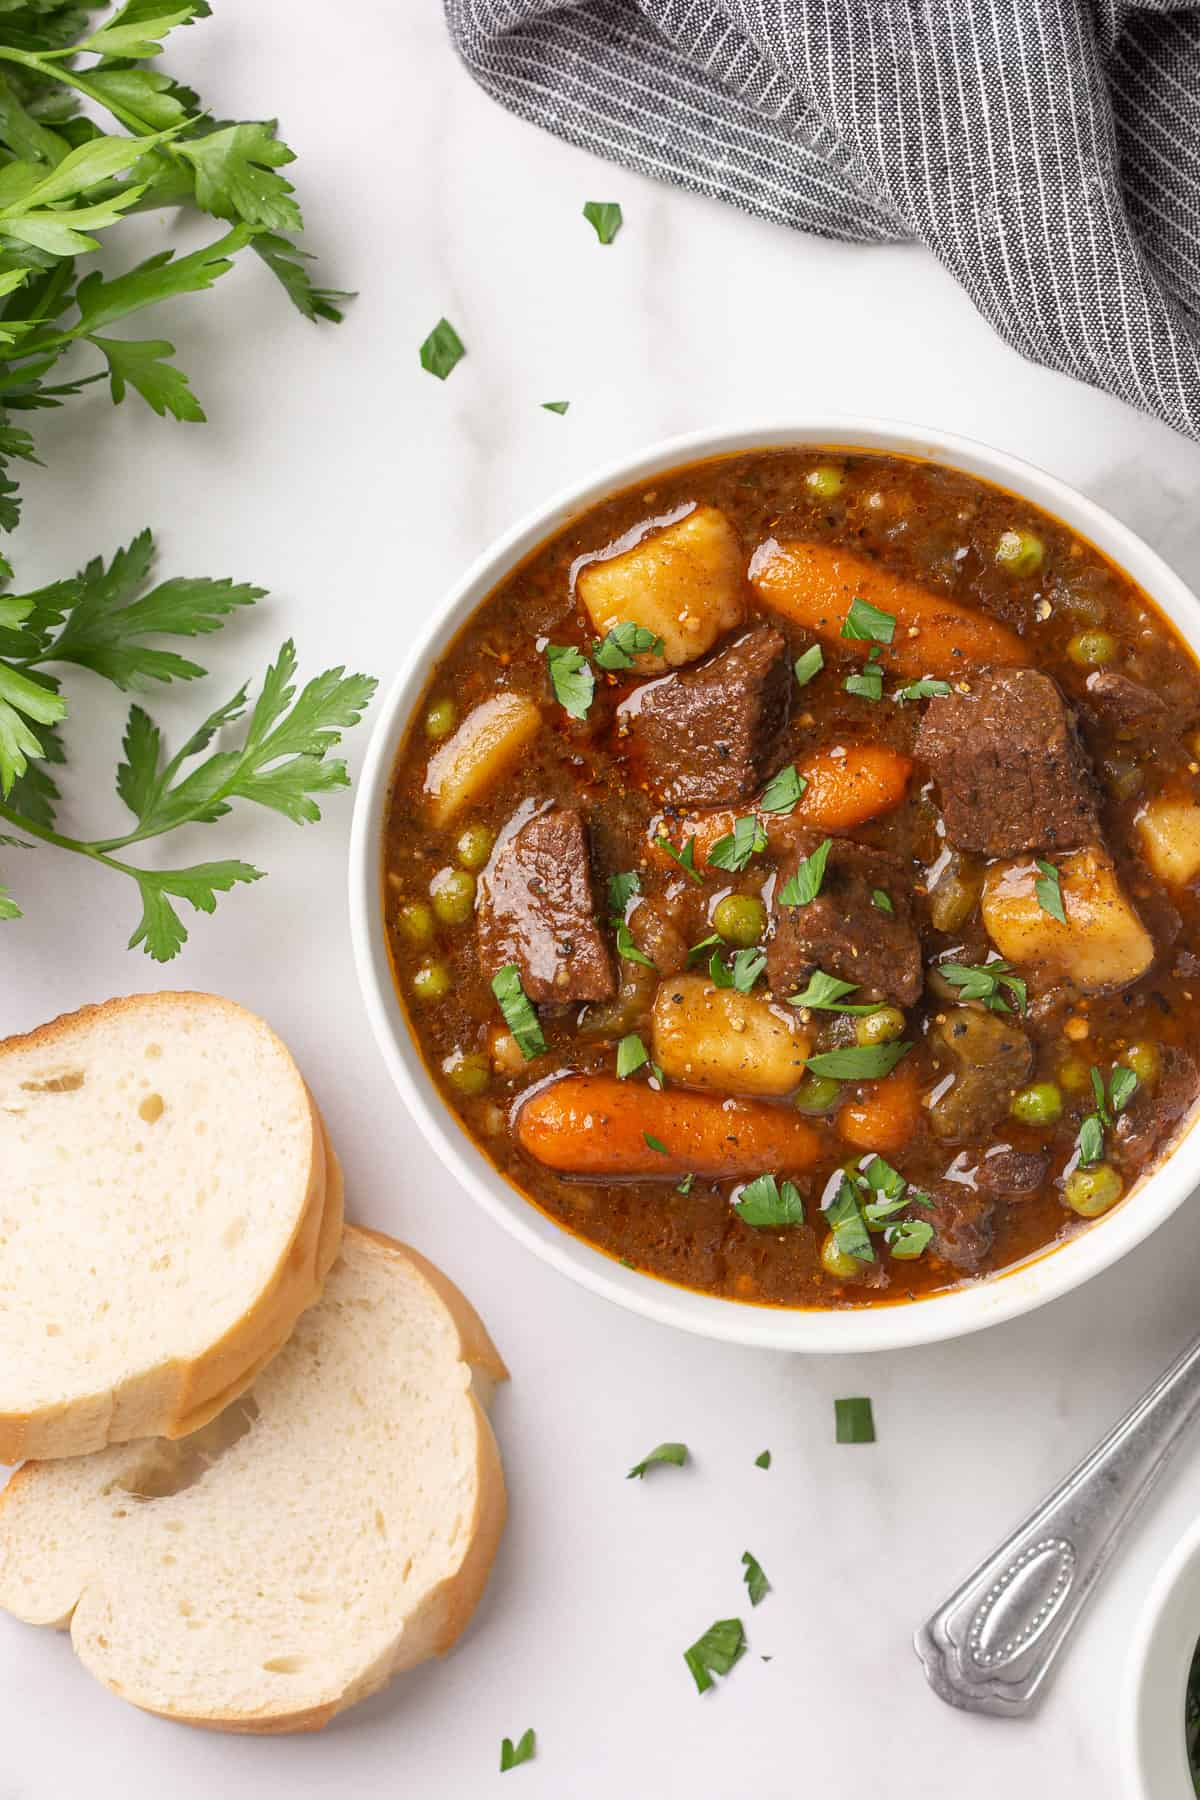 Overhead view of a white bowl of beef stew by sliced French bread.